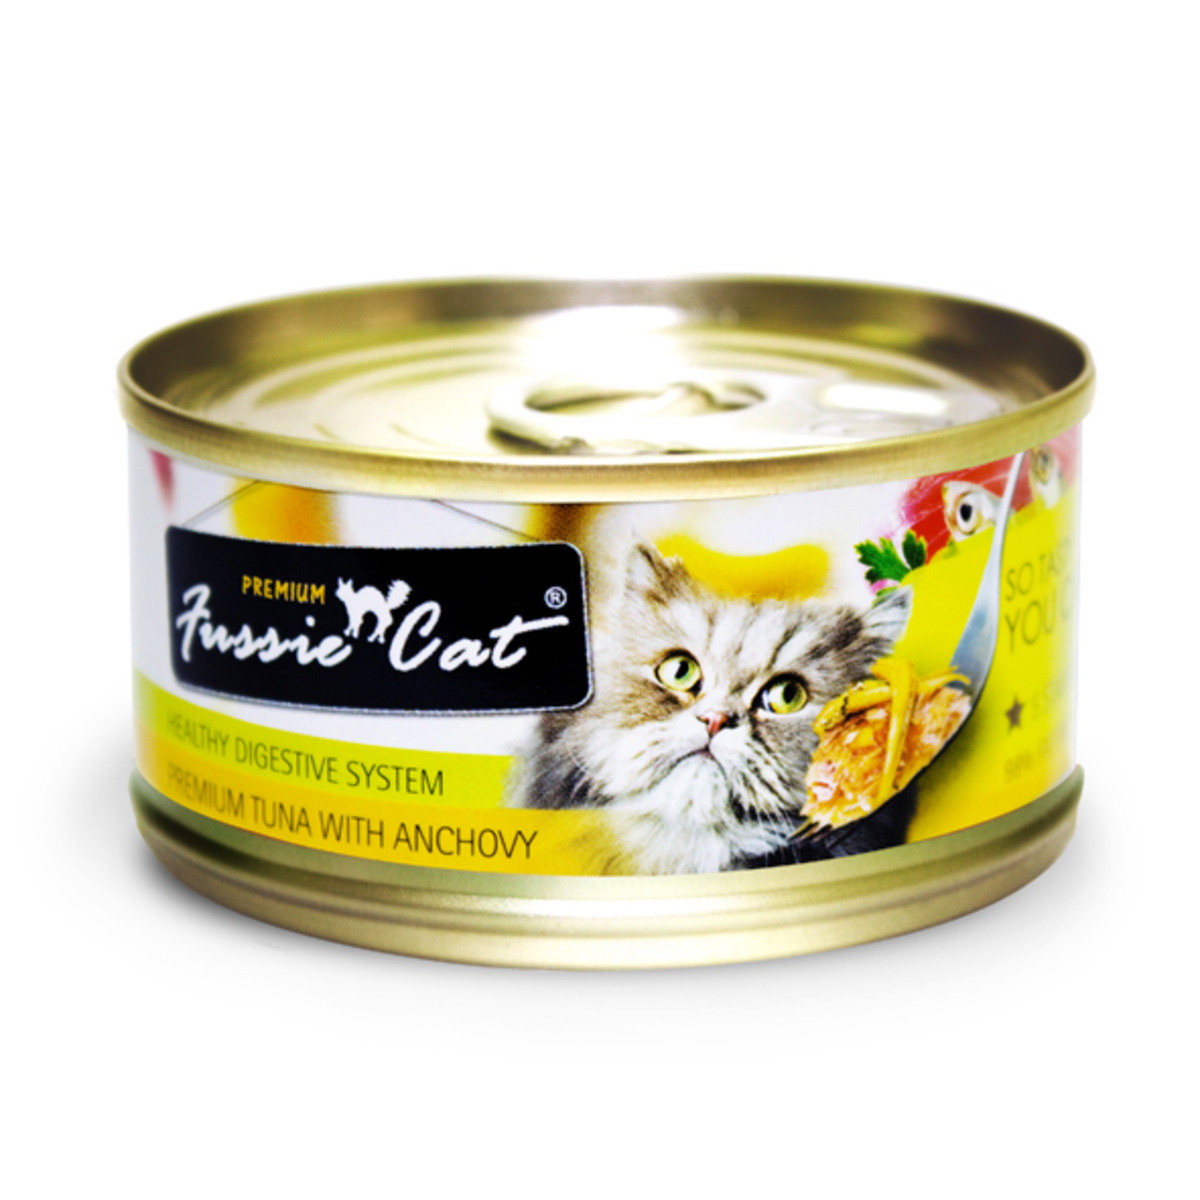 Tuna with Anchovy 80g X 24 Canned